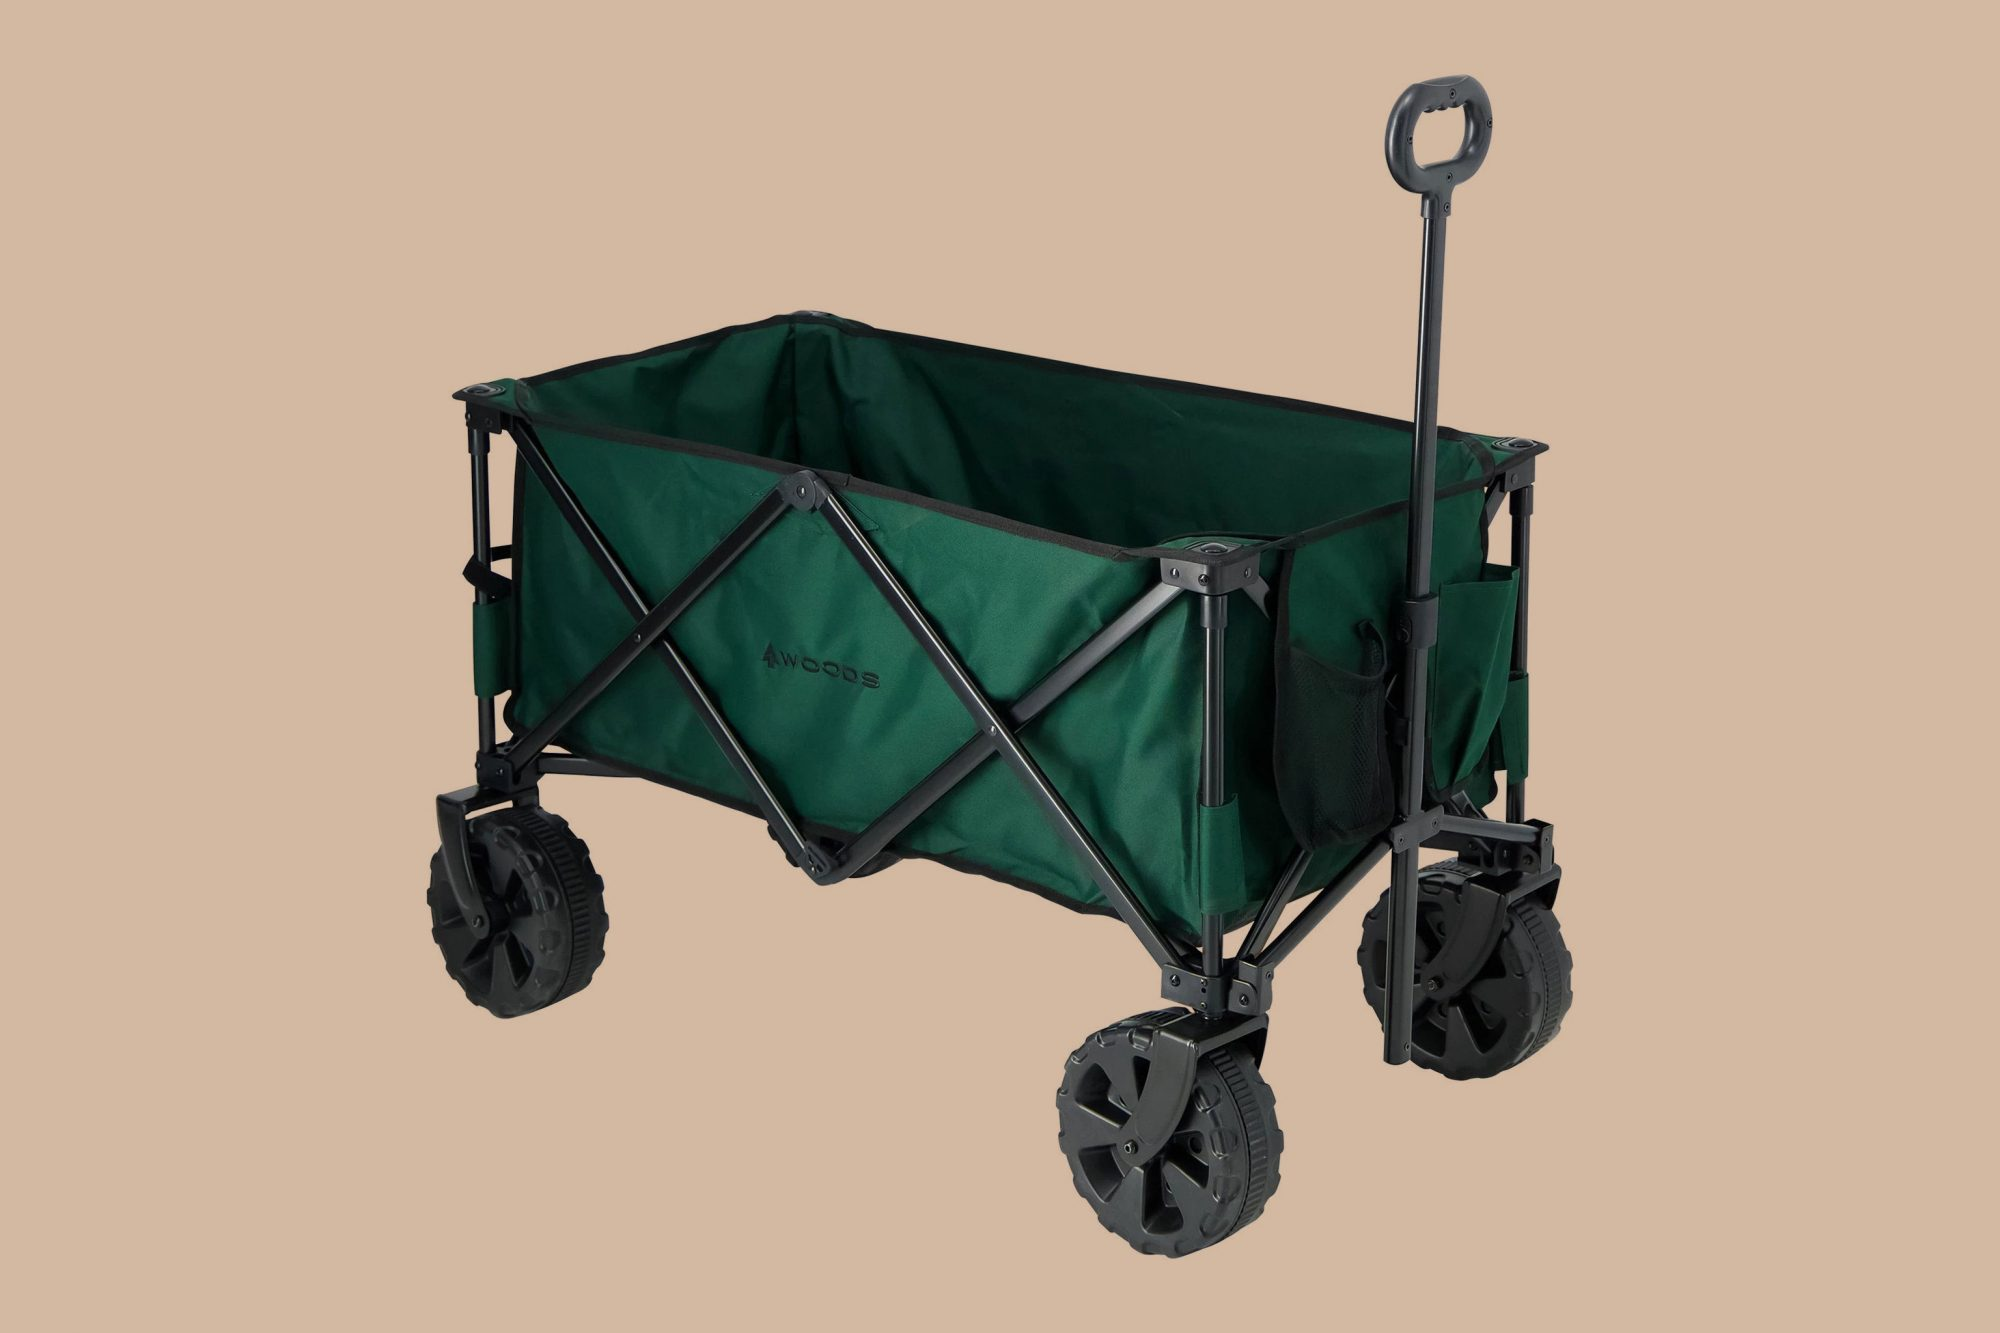 Woods Outdoor Collapsible Utility King Wagon,